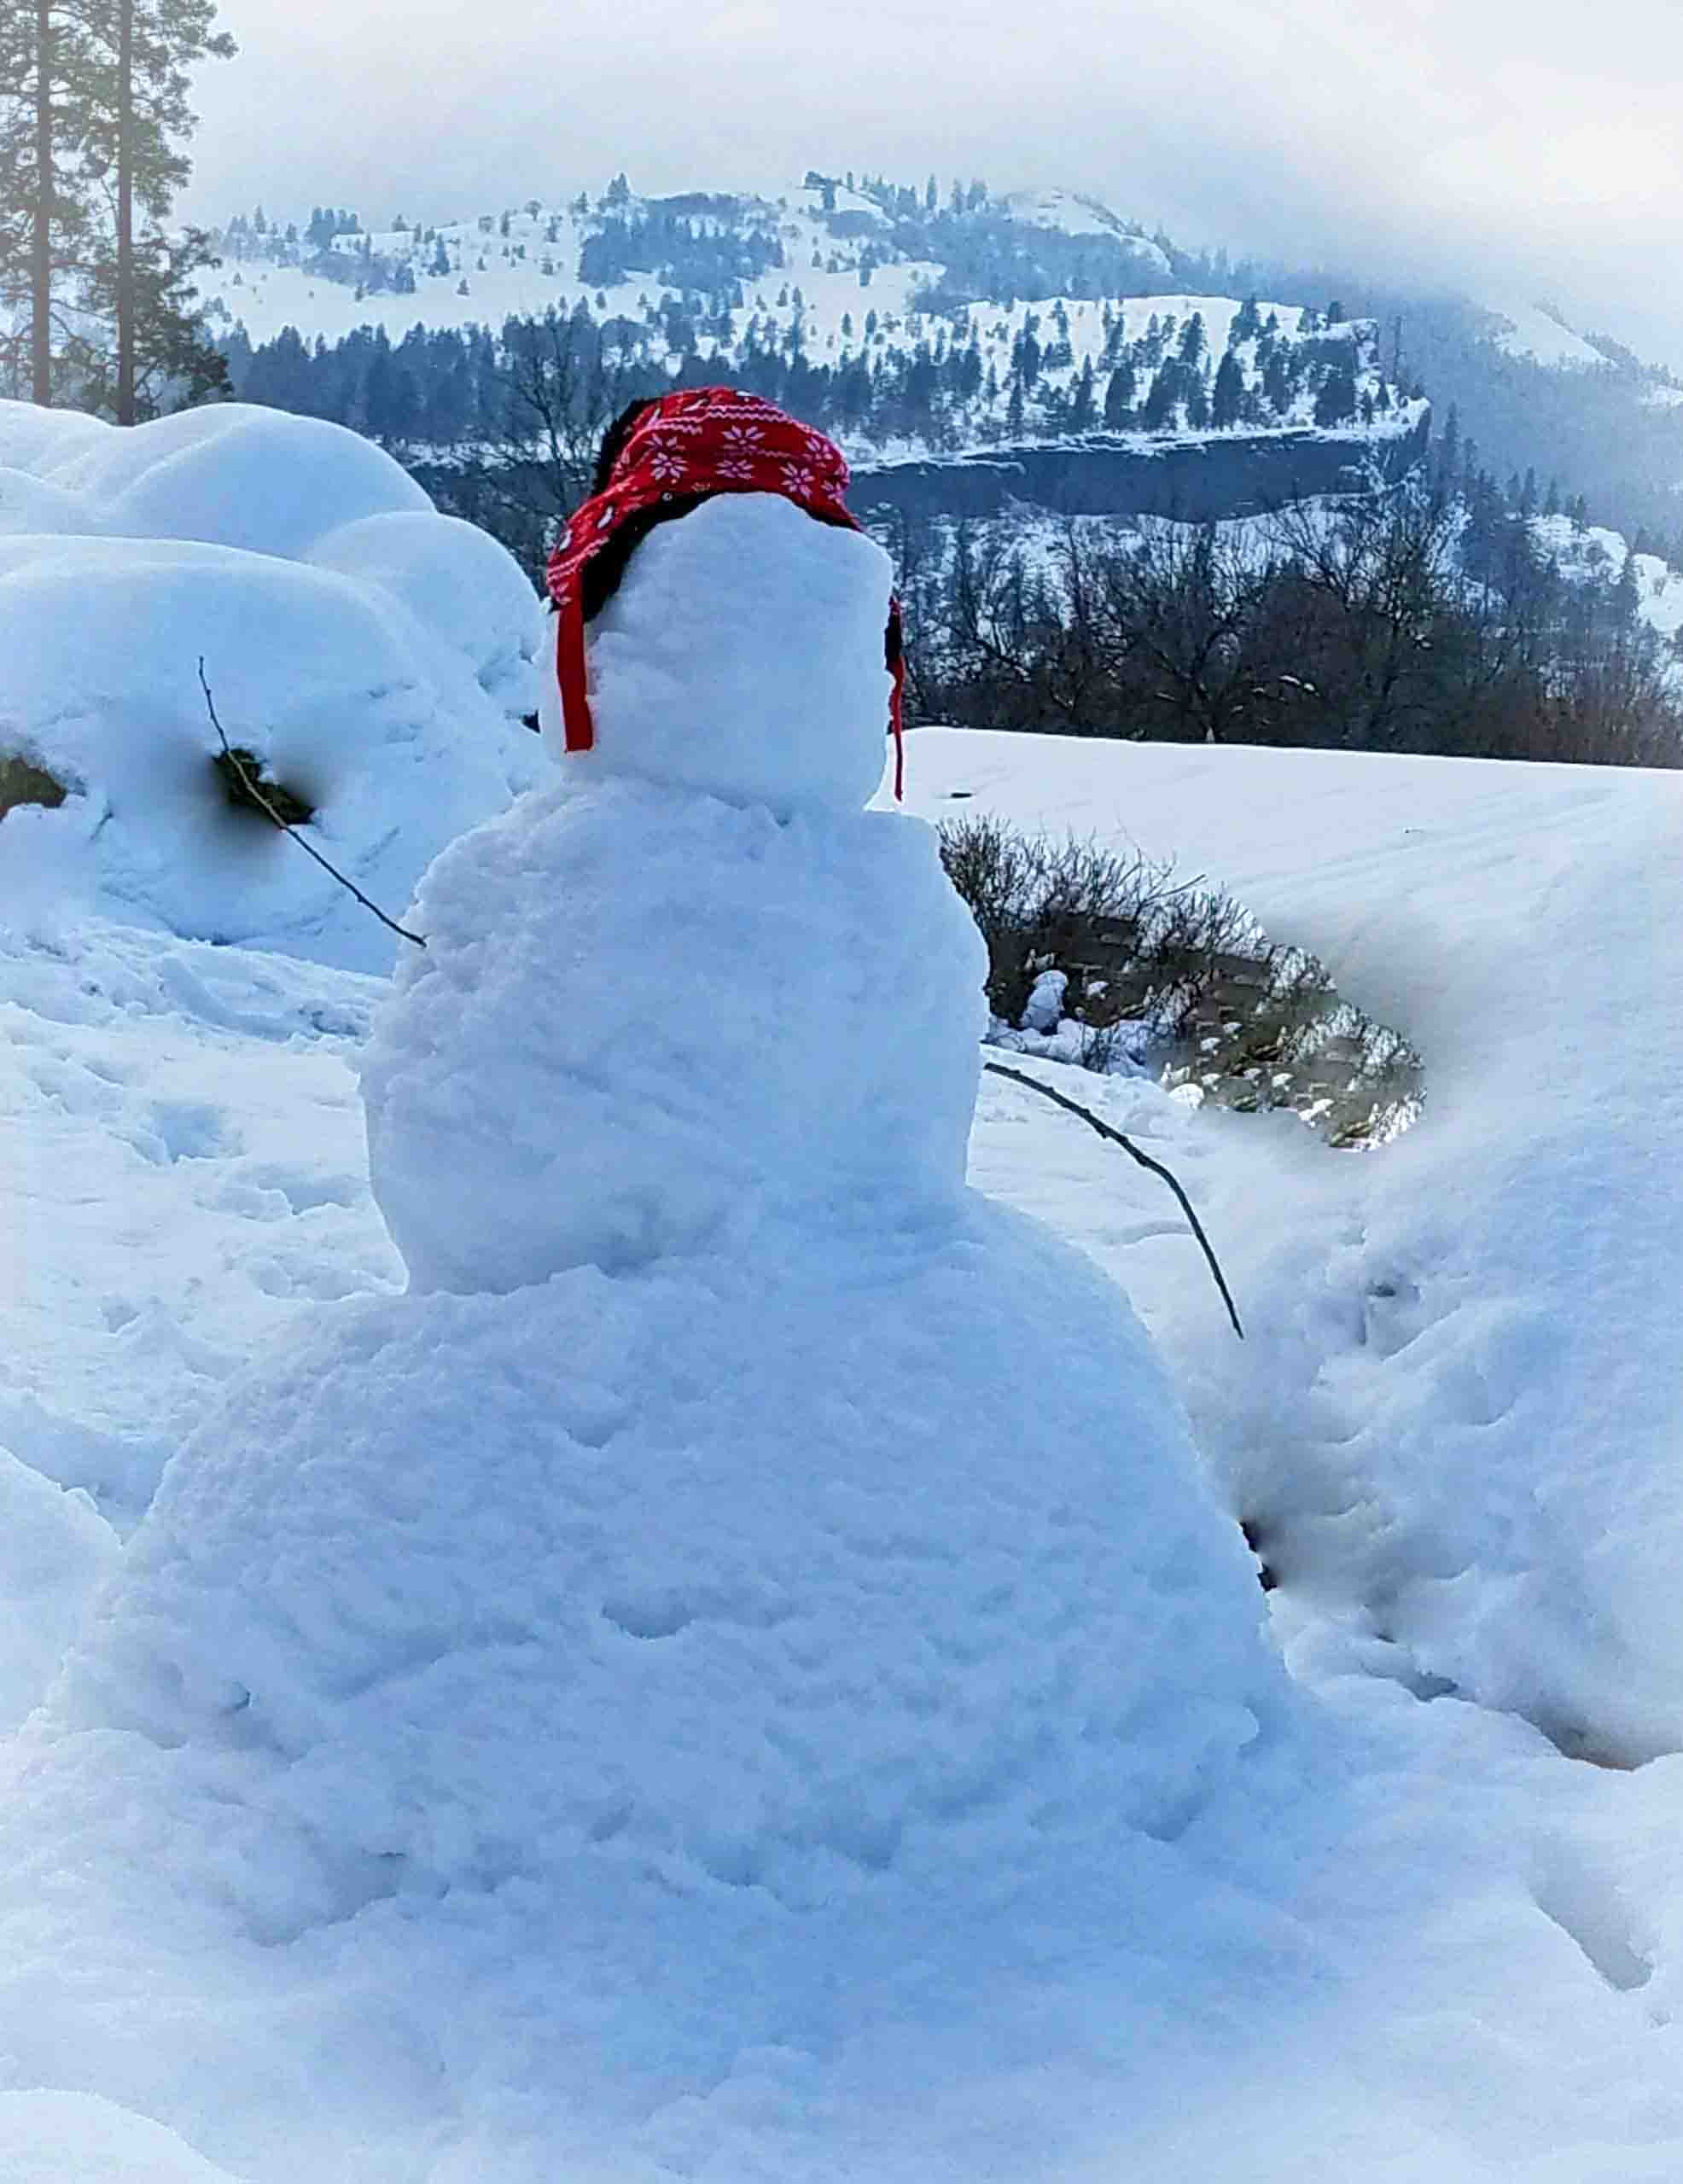 Our Snow Man. Photo: (c) Barb Ayers, DogDiary.org